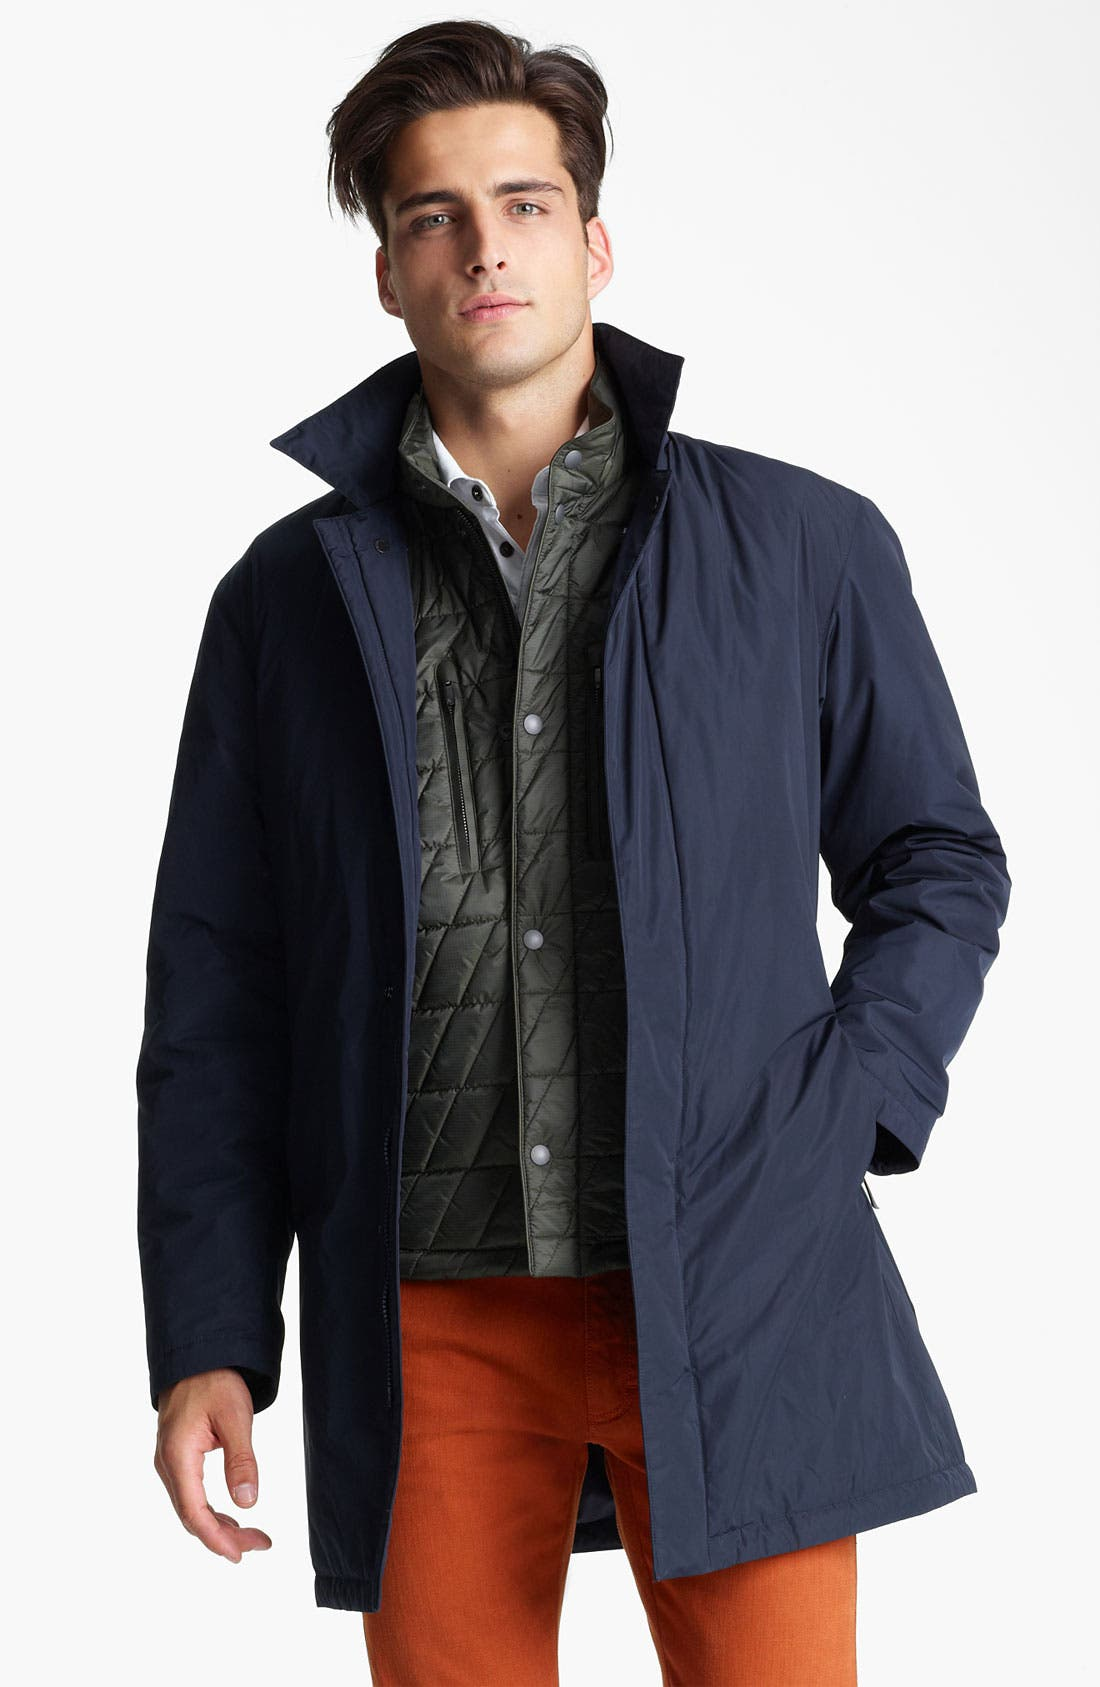 Alternate Image 1 Selected - Zegna Sport 'City' Raincoat